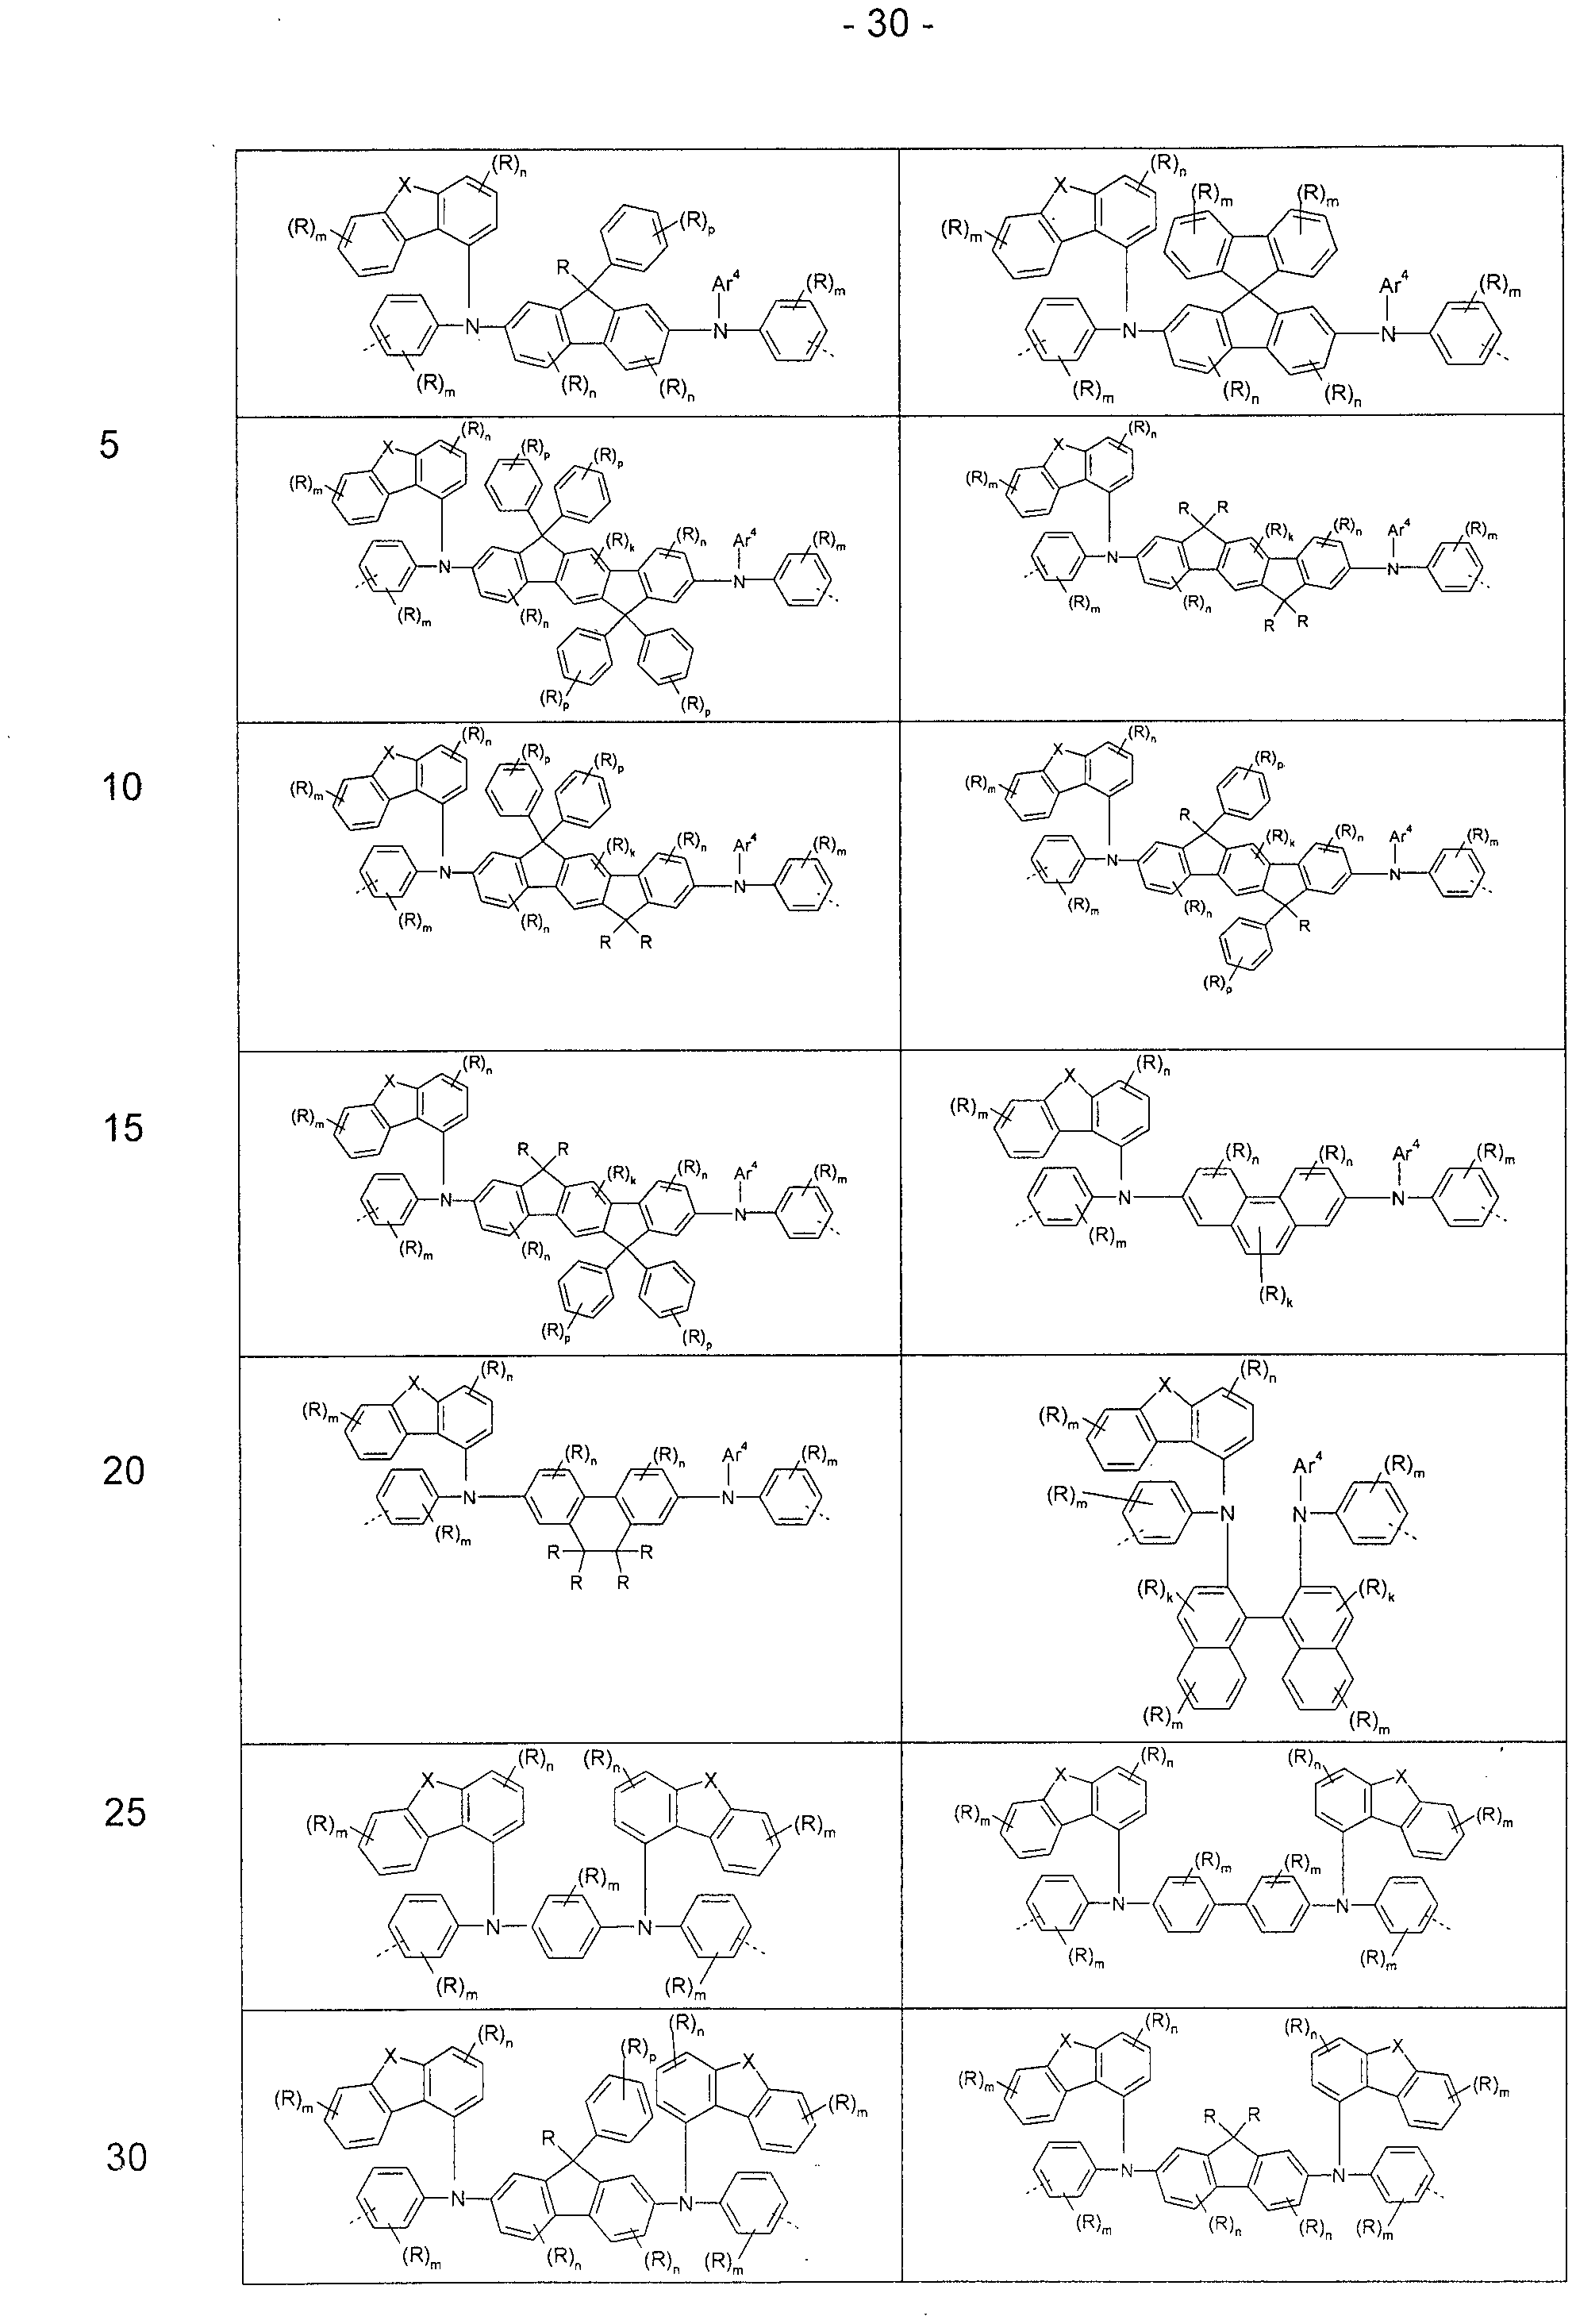 wo2013156129a1 polymers containing substituted oligo triarylamine